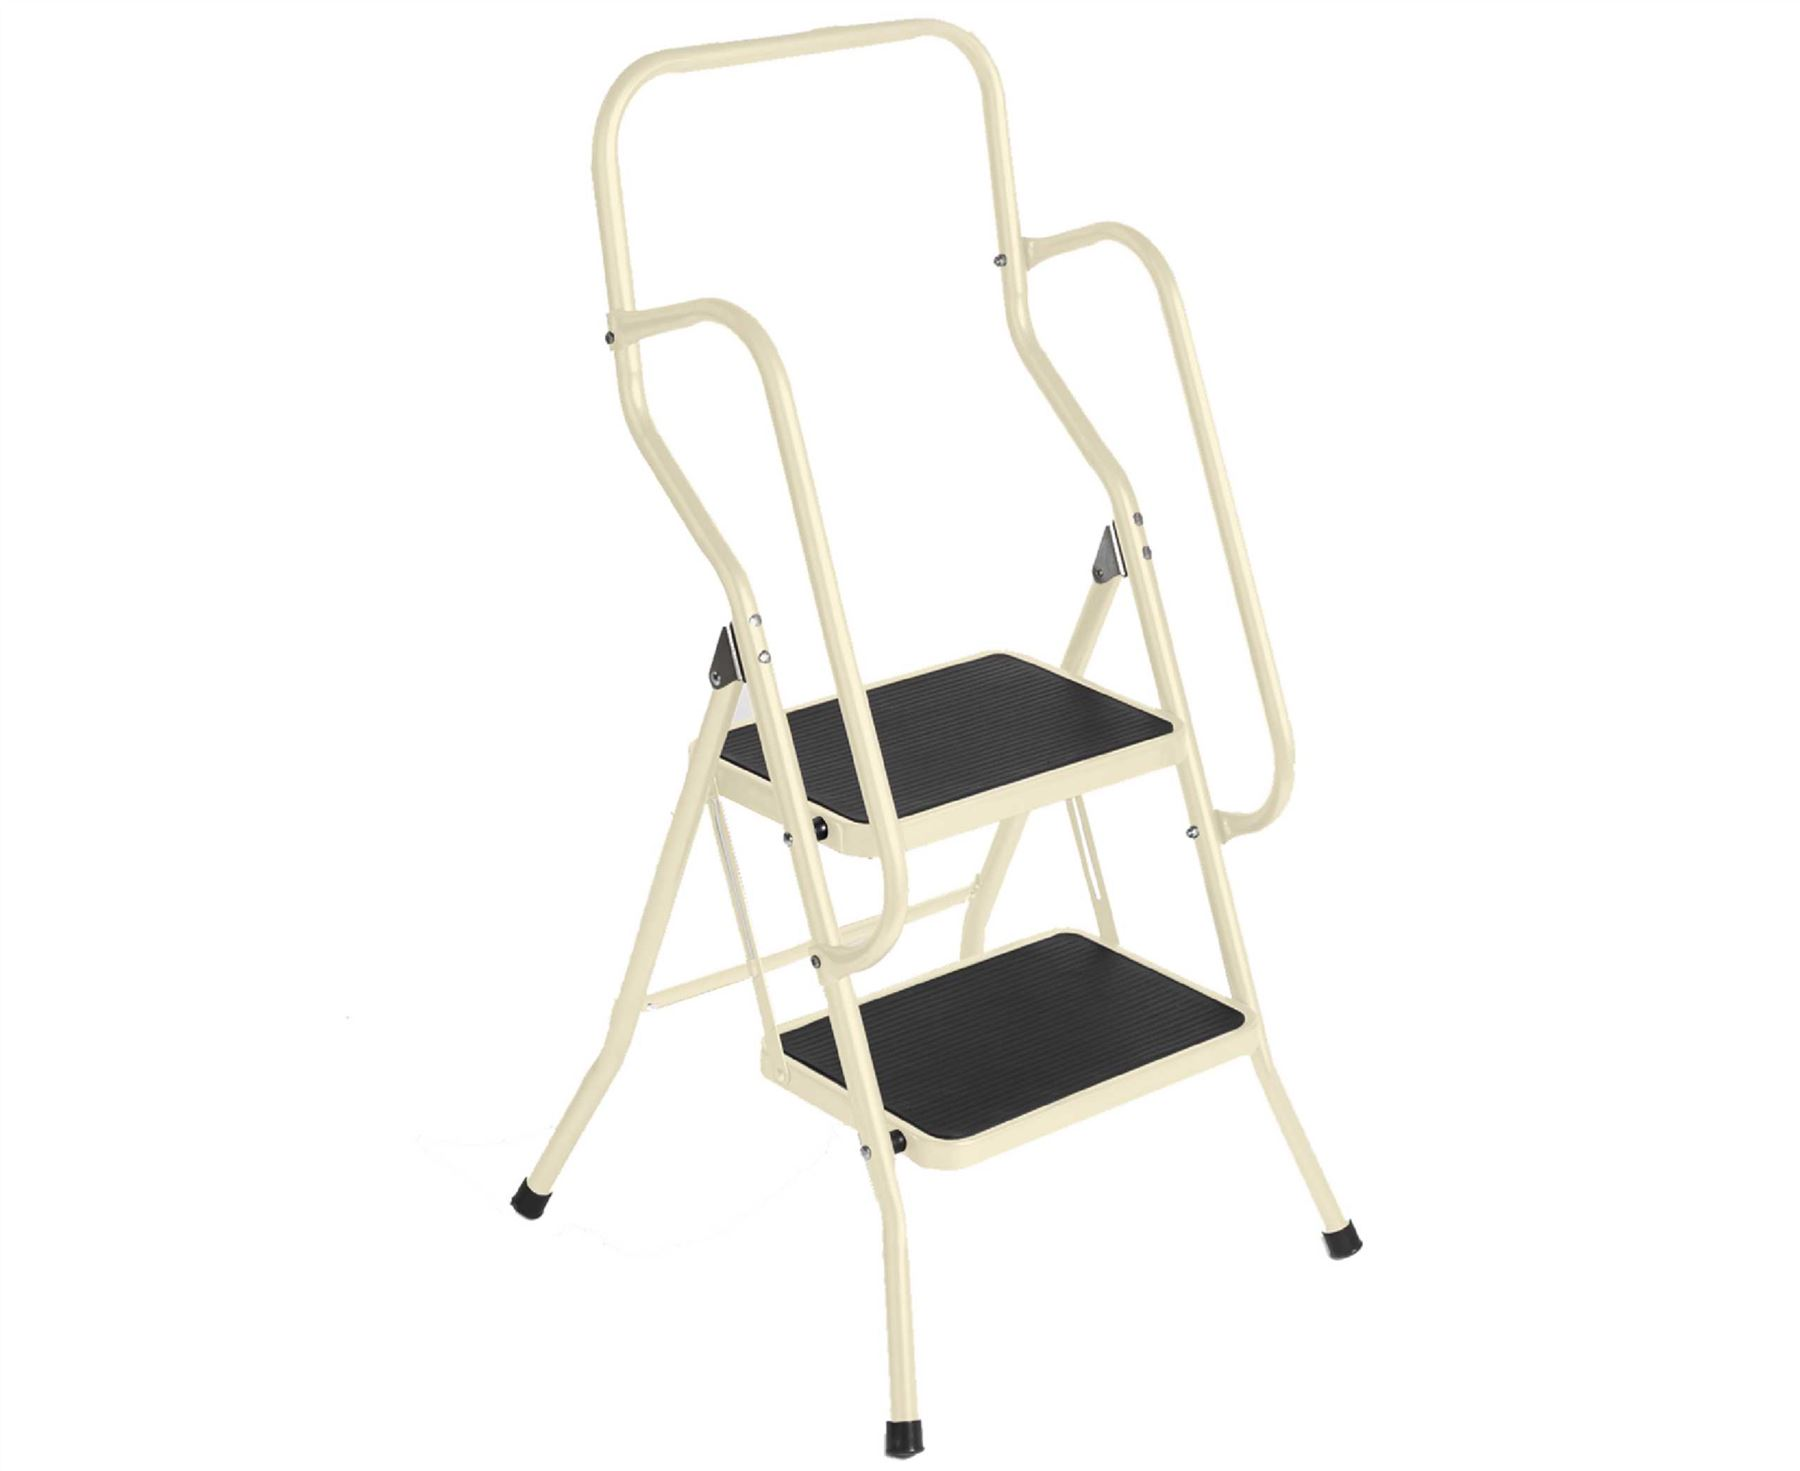 2 Step Safety Ladder Buttermilk Foldable Non Slip Tread